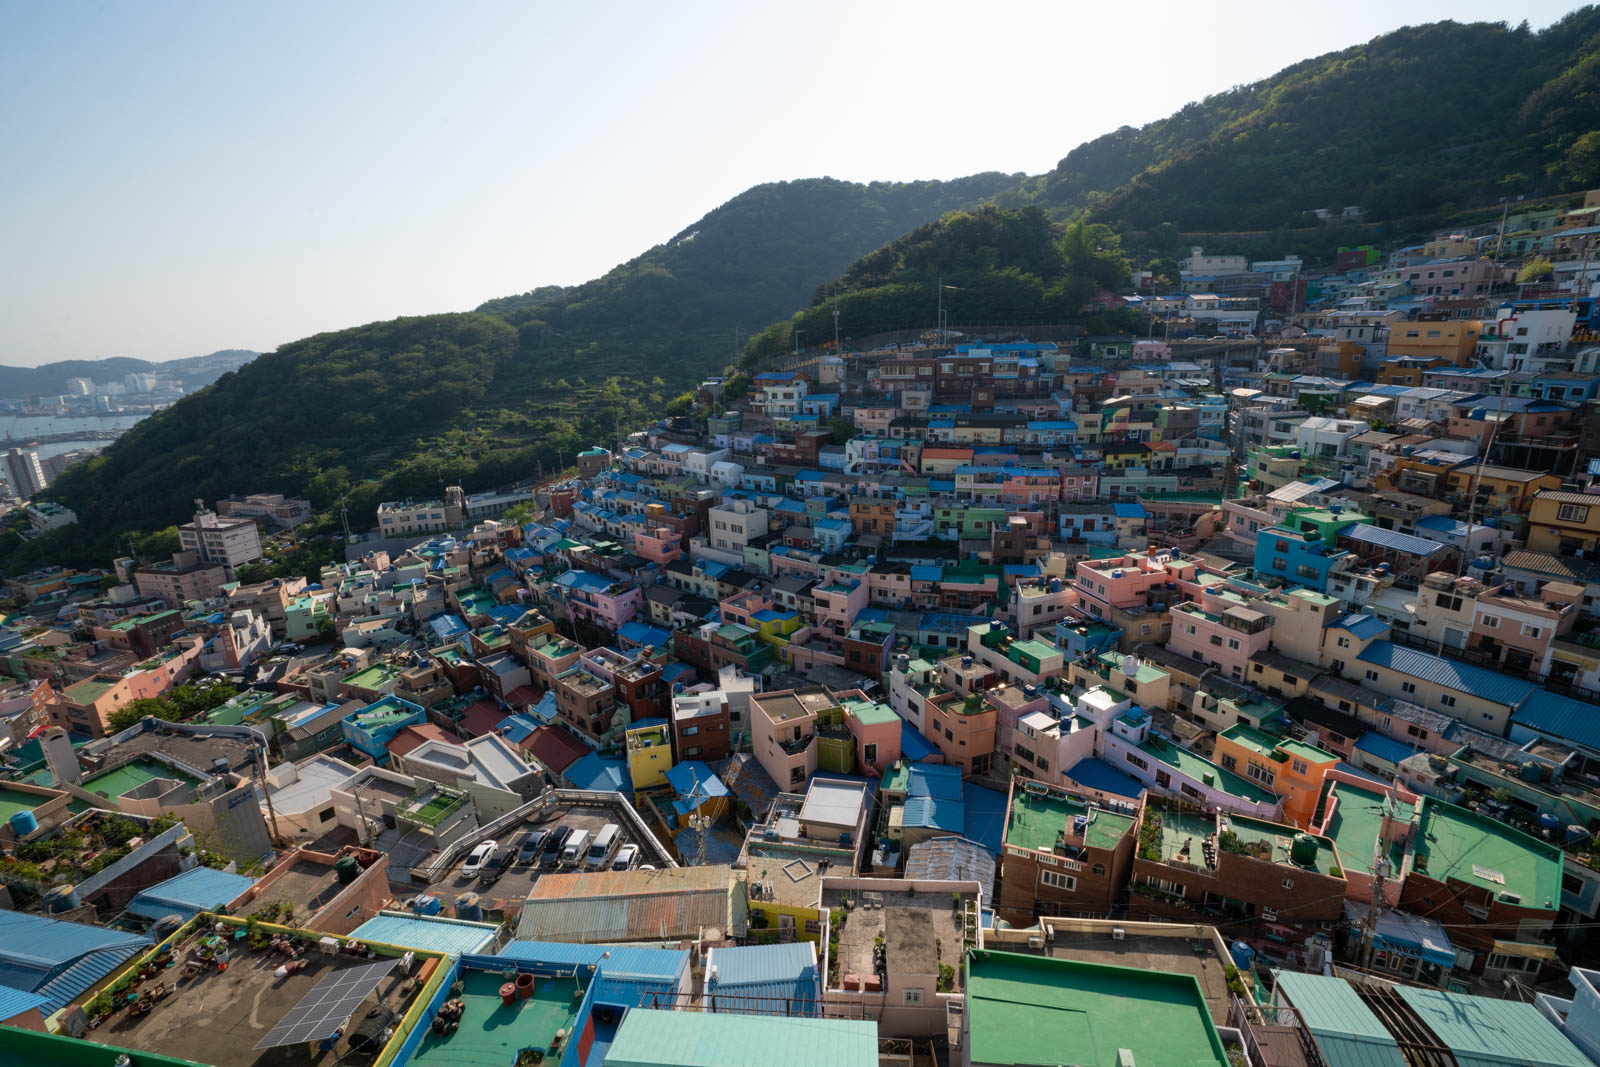 Gamcheon Culture Village, Busan, Korea